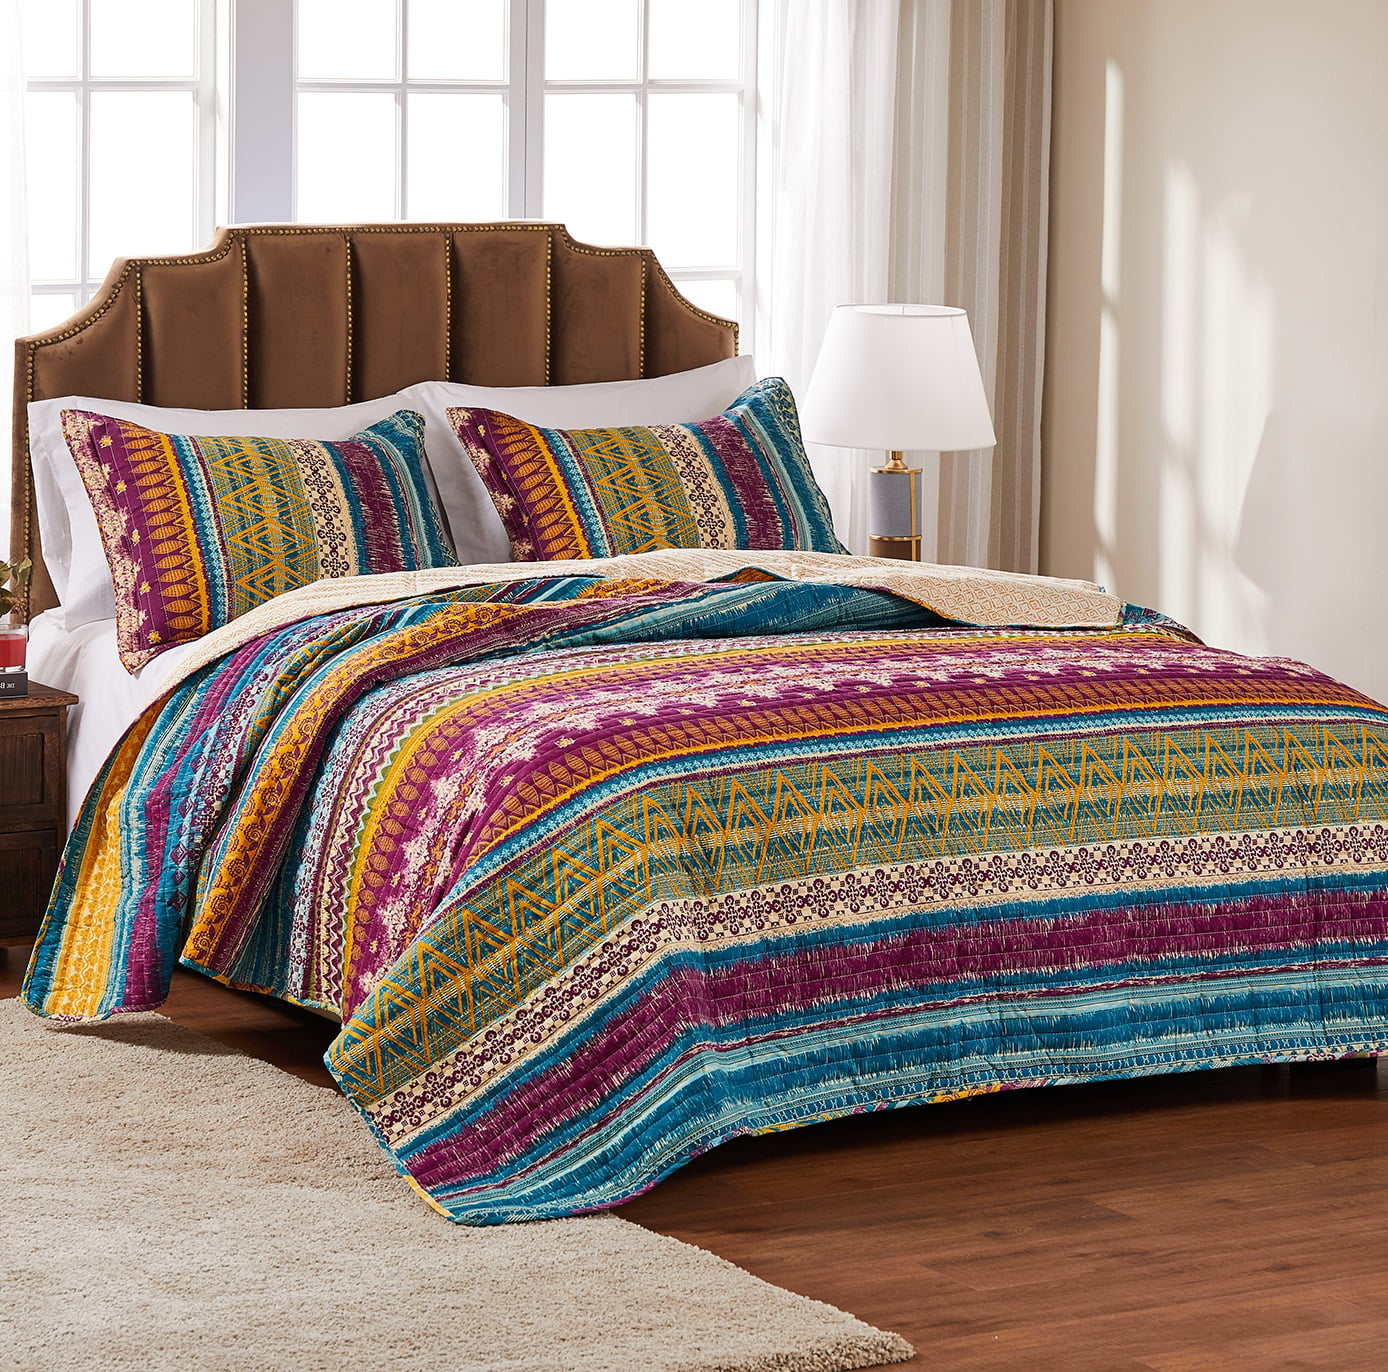 Global Trends Santa Fe 100 Cotton Oversized Quilt Set 2 Piece Twin Twin Xl Walmart Com Walmart Com